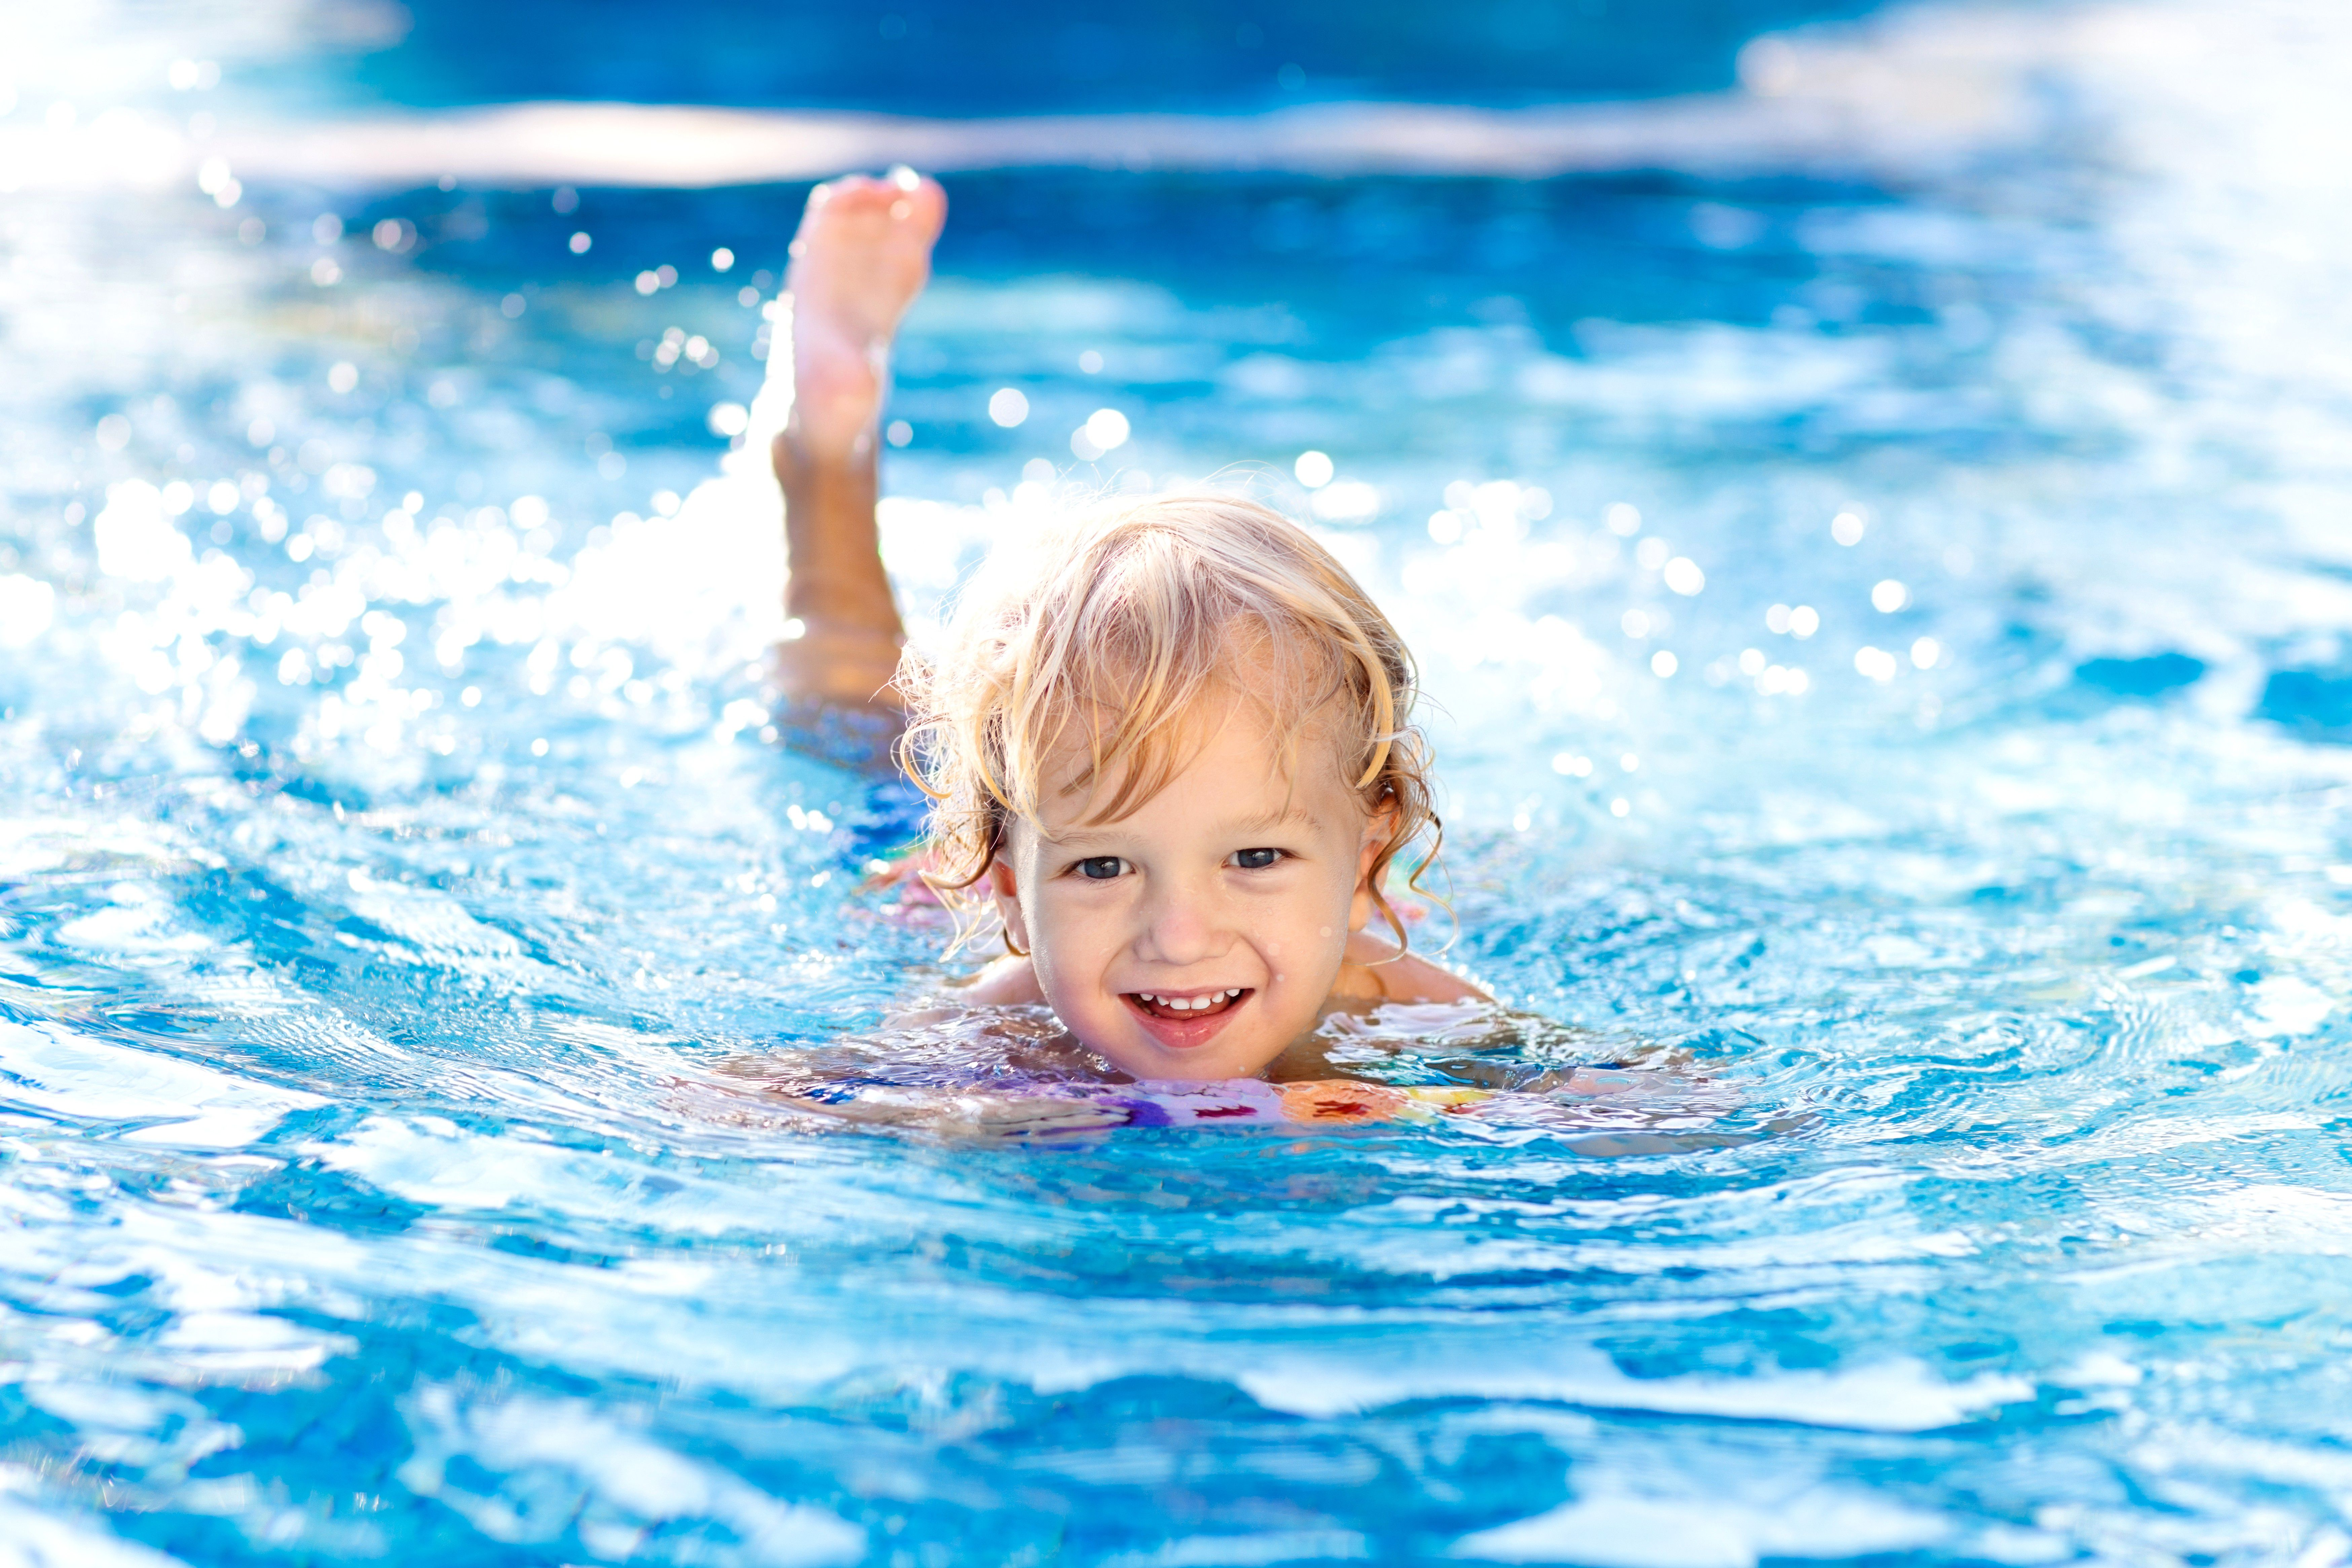 A small child learning to swim in a pool